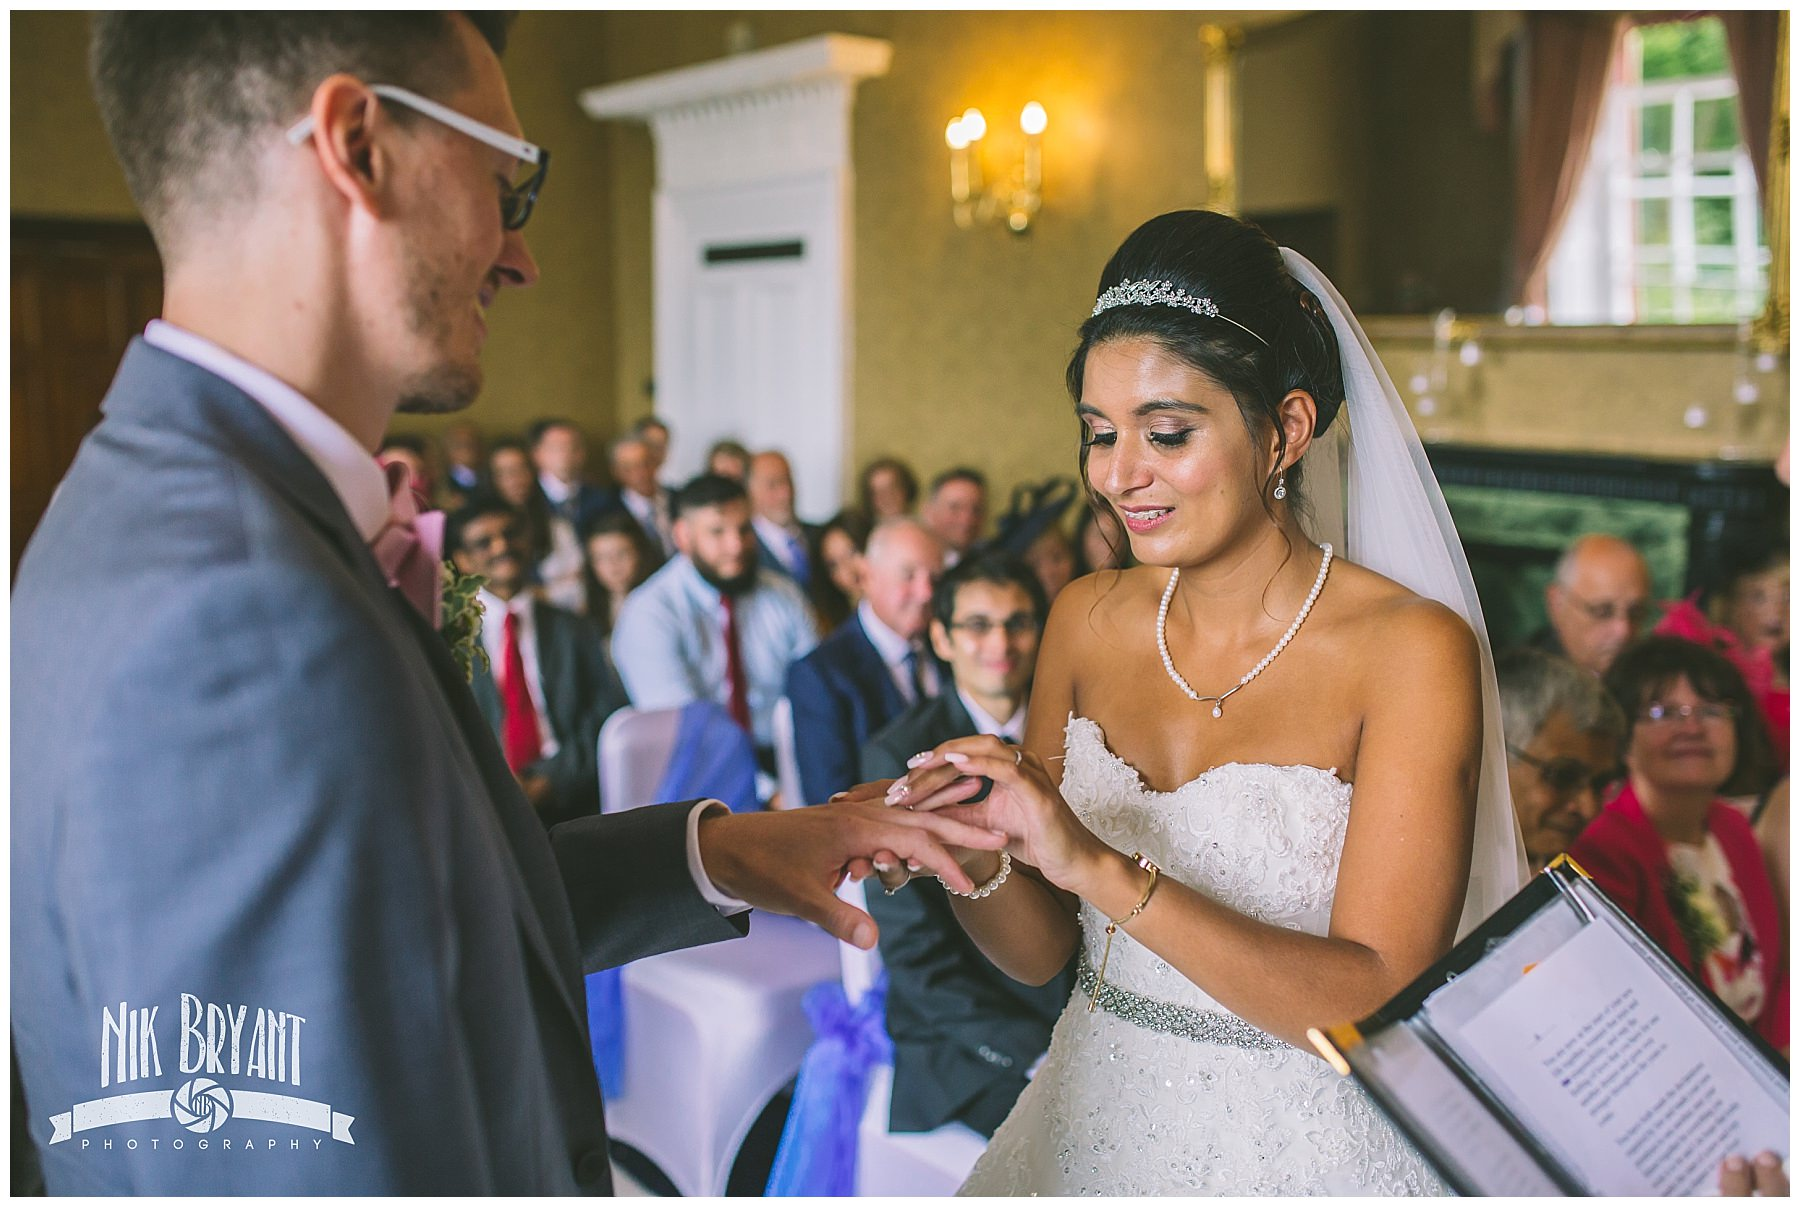 bride gives groom wedding ring during ceremony